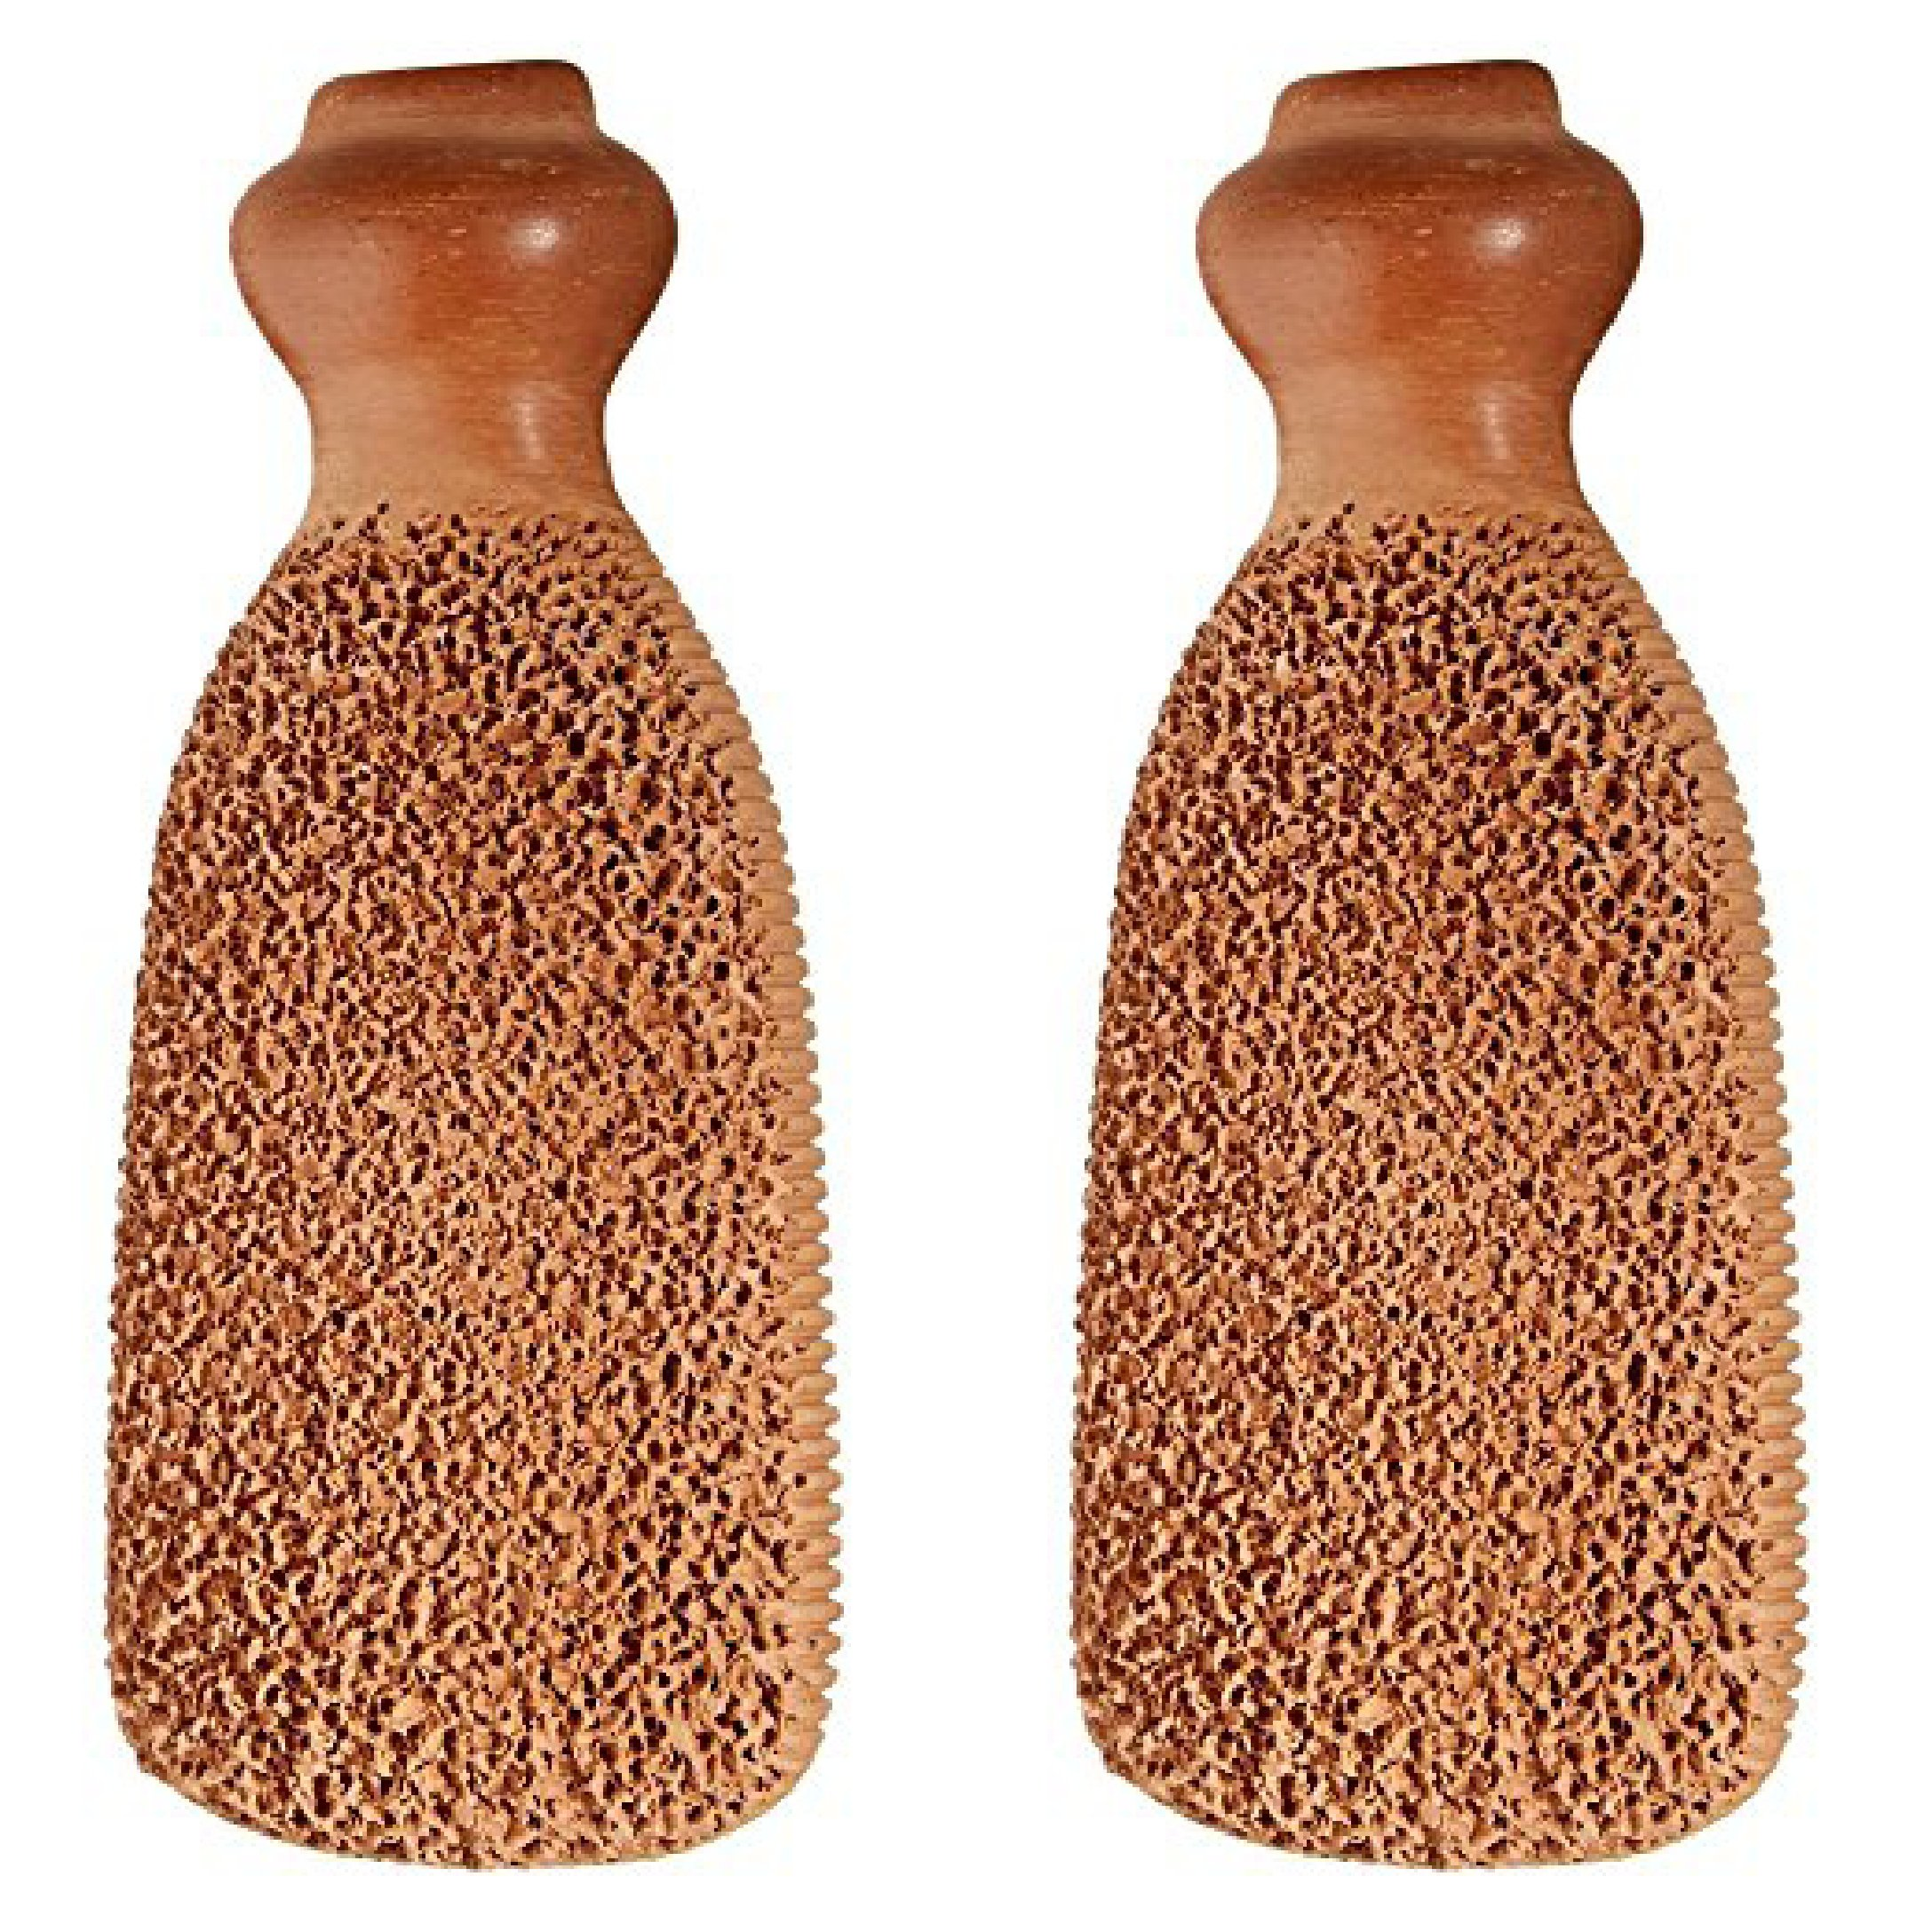 Gilden Tree 2-Sided Terra-Cotta Foot Scrubber (Set of 2)